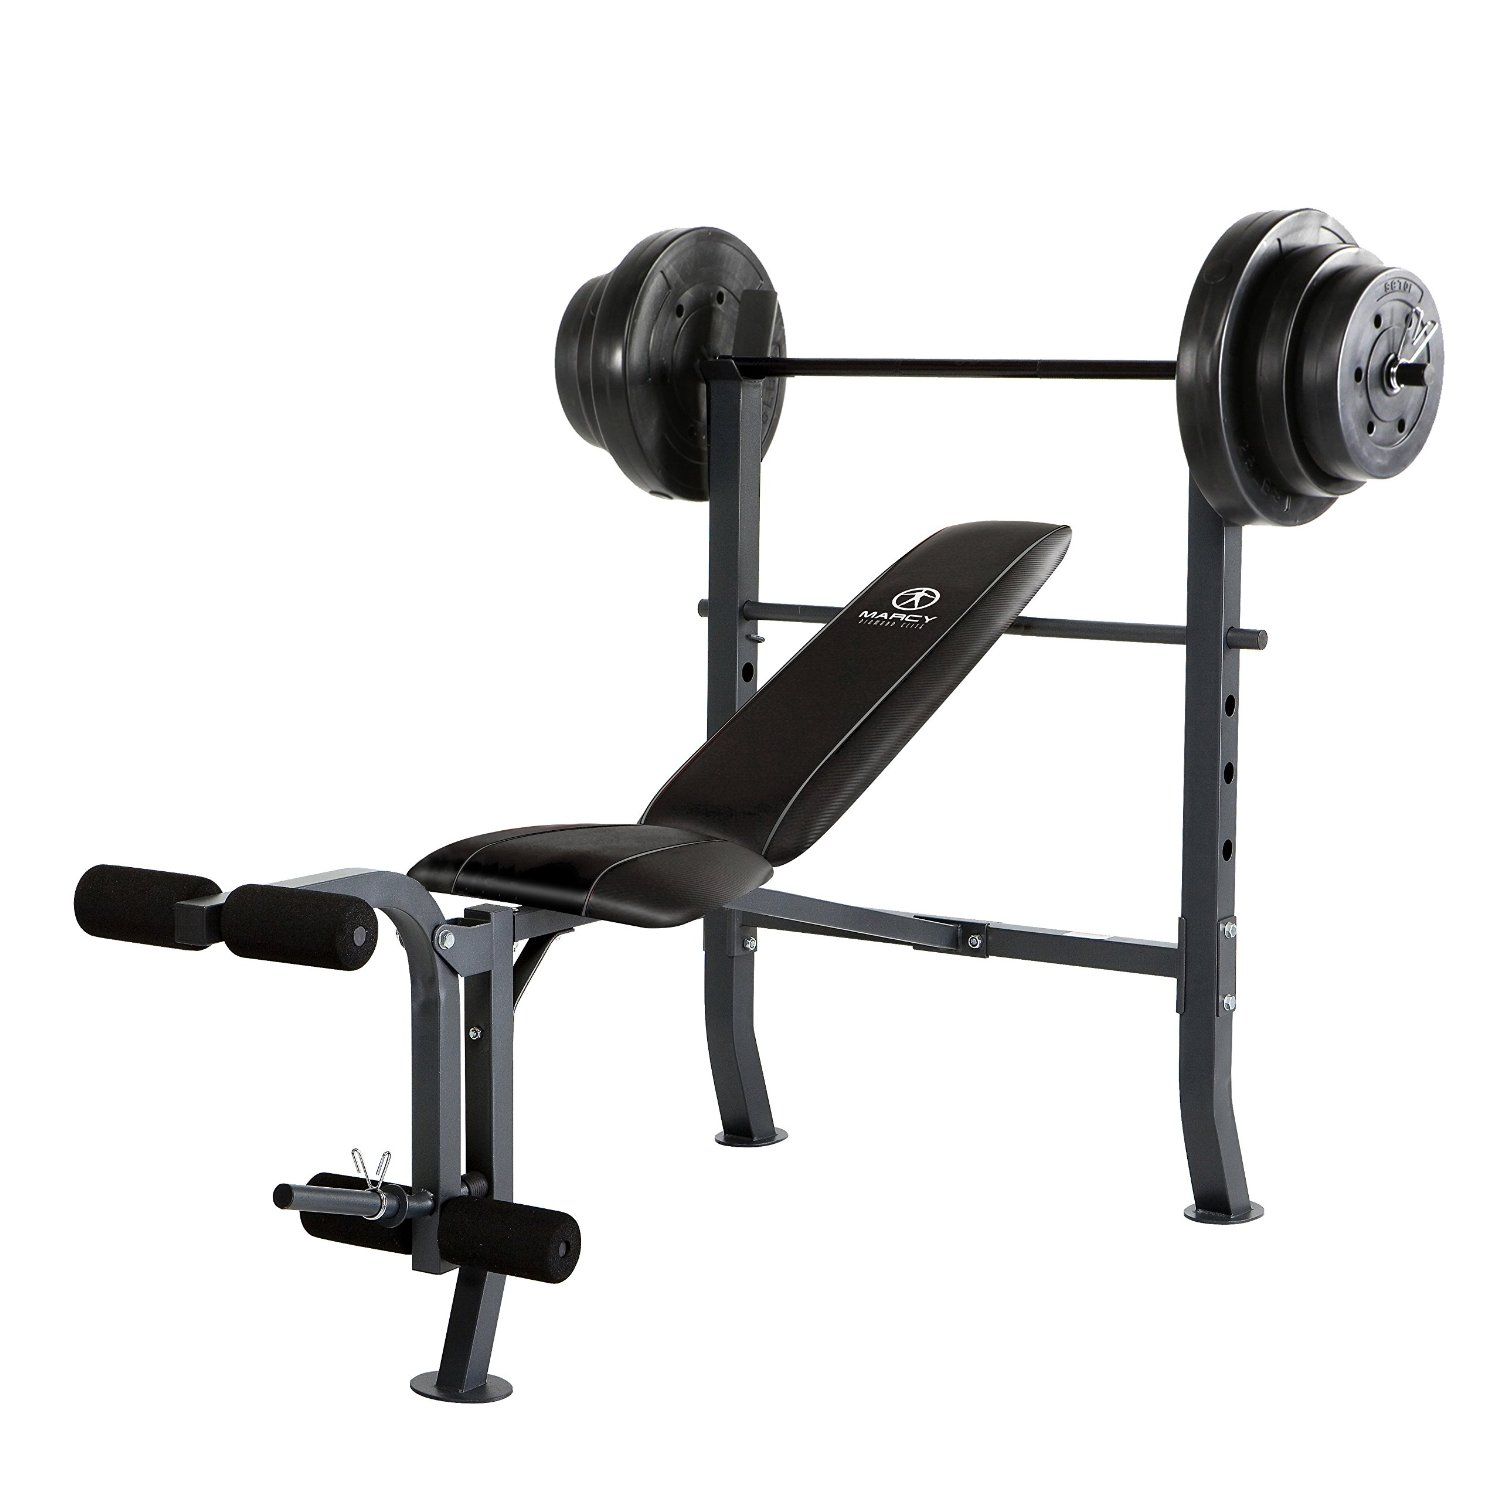 Marvelous Marcy Standard Bench W/ 100 Lb Weight Set Home Gym Workout Equipment |  MD2082W